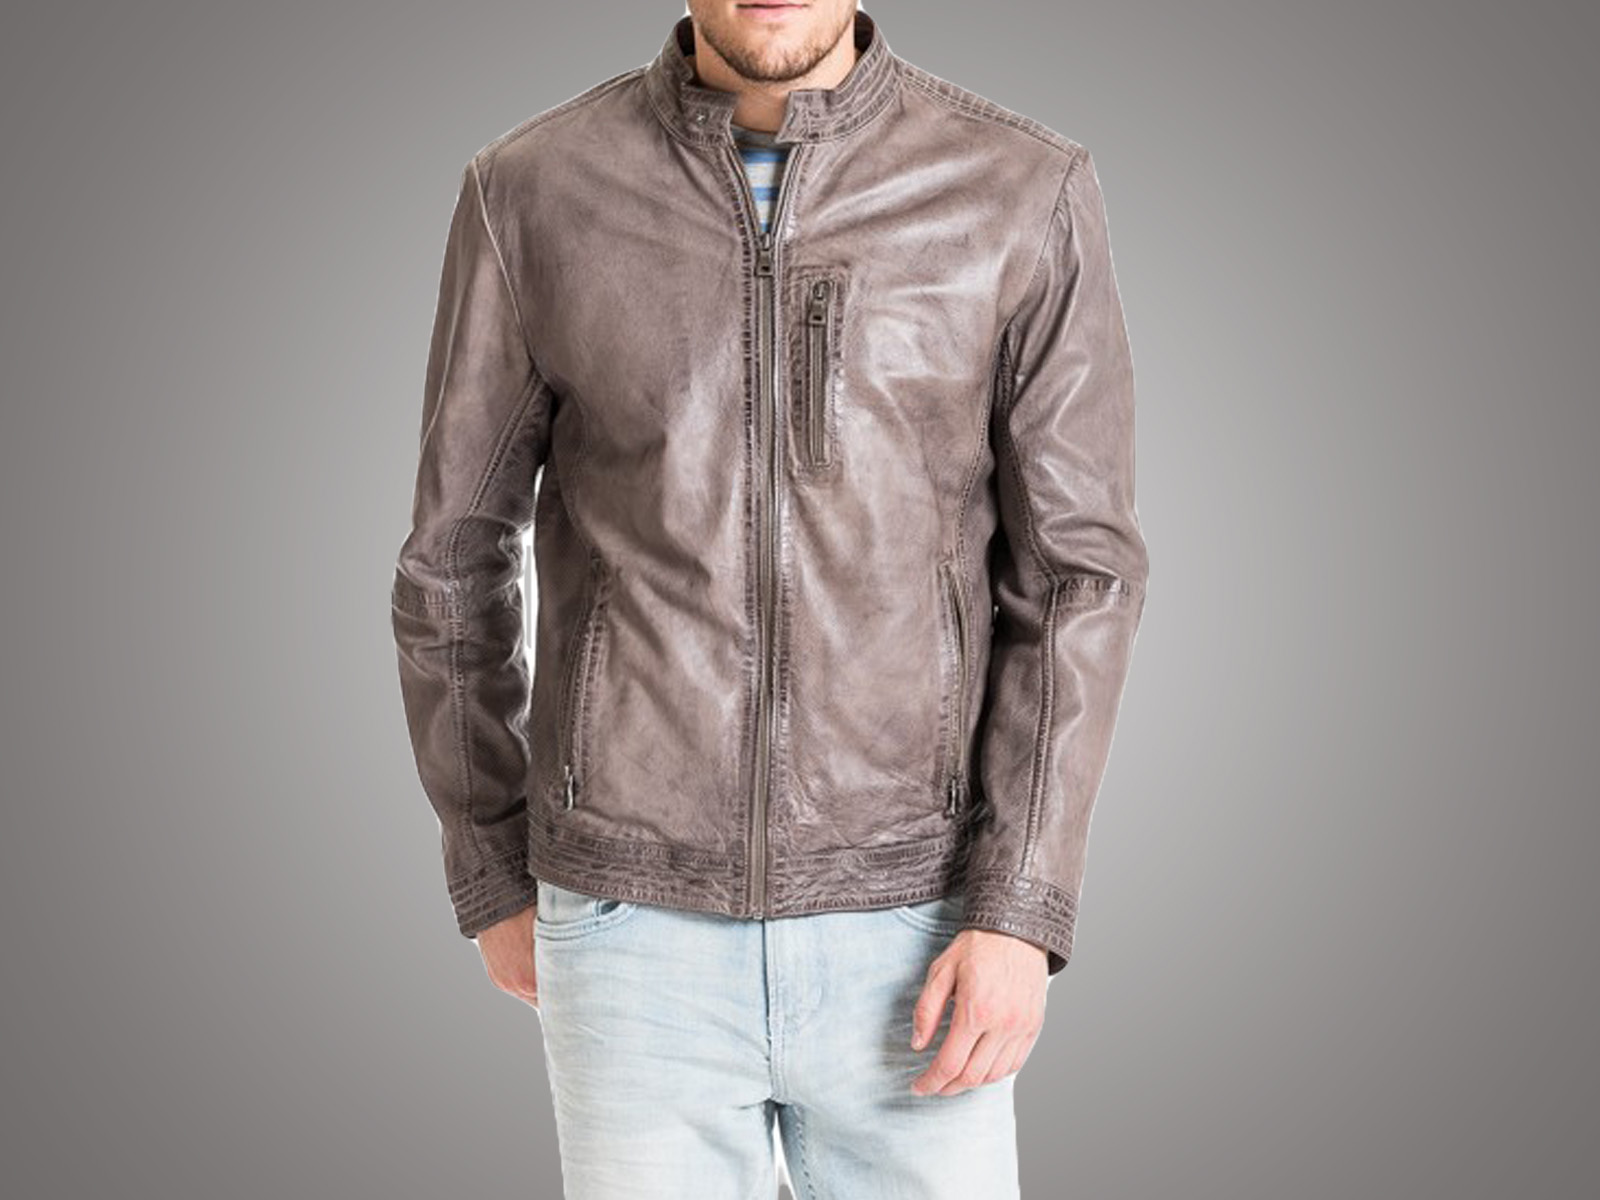 Custom All New Classic Leather Jacket